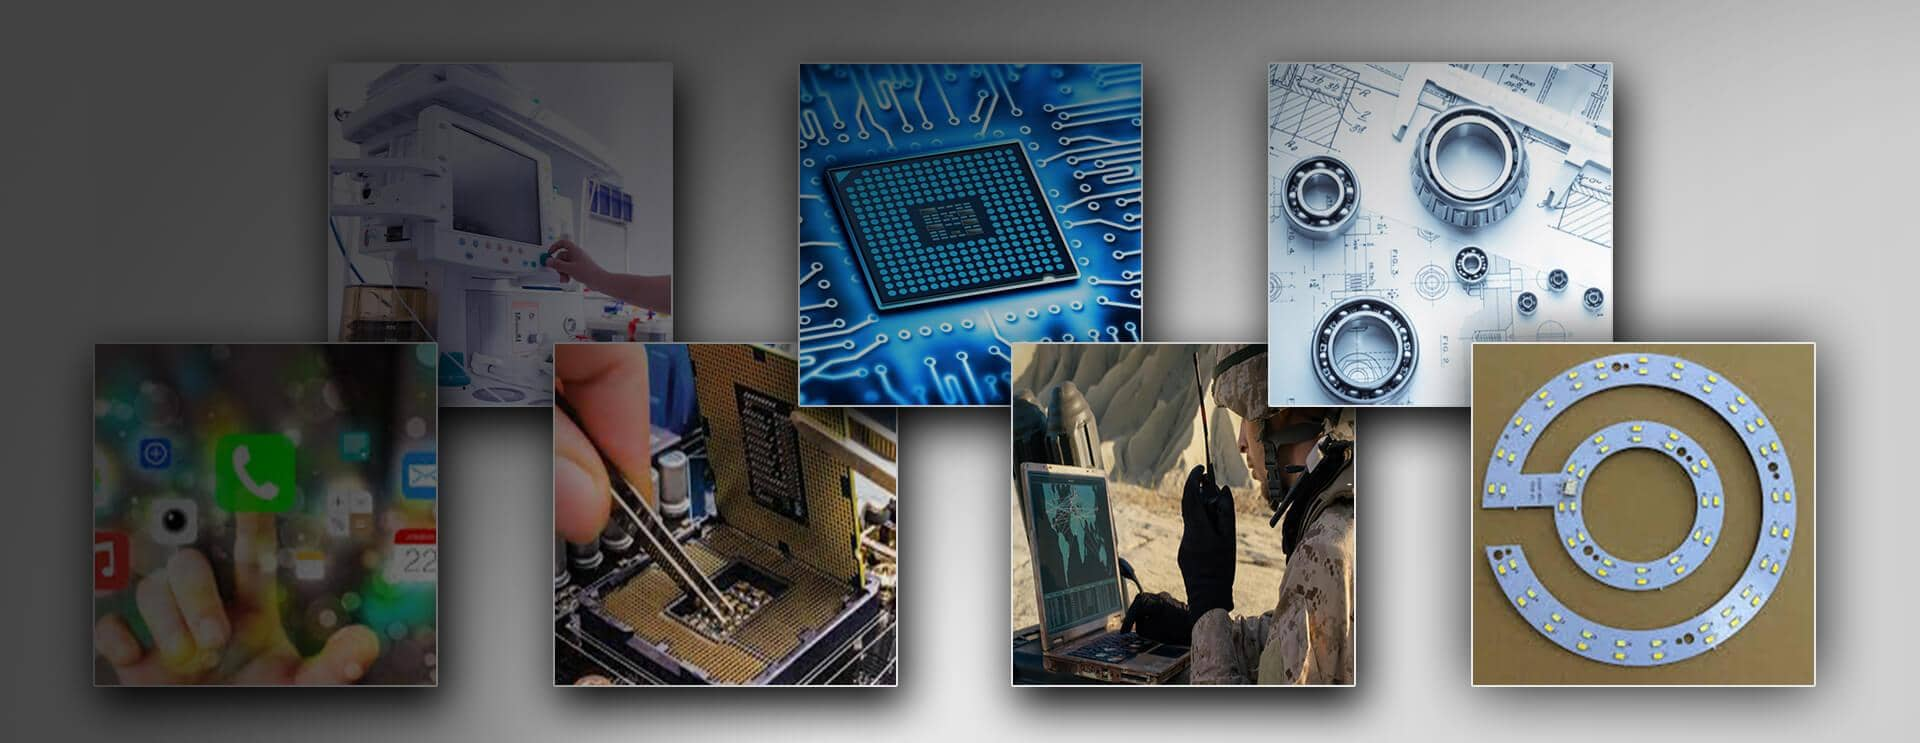 Custom Printed Circuit Board Manufacturer in USA | Twisted